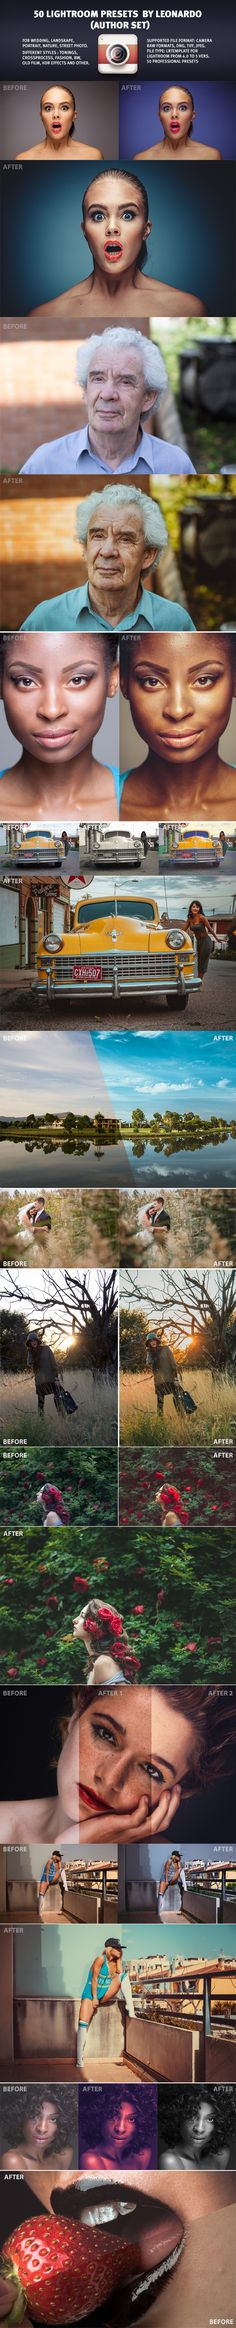 50 UNIQUE PRESET BY LEONARDO is the set of professional Lightroom Presets for photographers and designers.You'll get 120 stunning, universal Lightroom presets. Simple to use, these effects consist of more than 10 different types of effects from Old film to Landskape Presets. These presets were tested and optimized to give nice results for a wide variety of images, and different type of files : raw, jpg, tiff. http://graphicriver.net/item/50-lightroom-presets/9965398